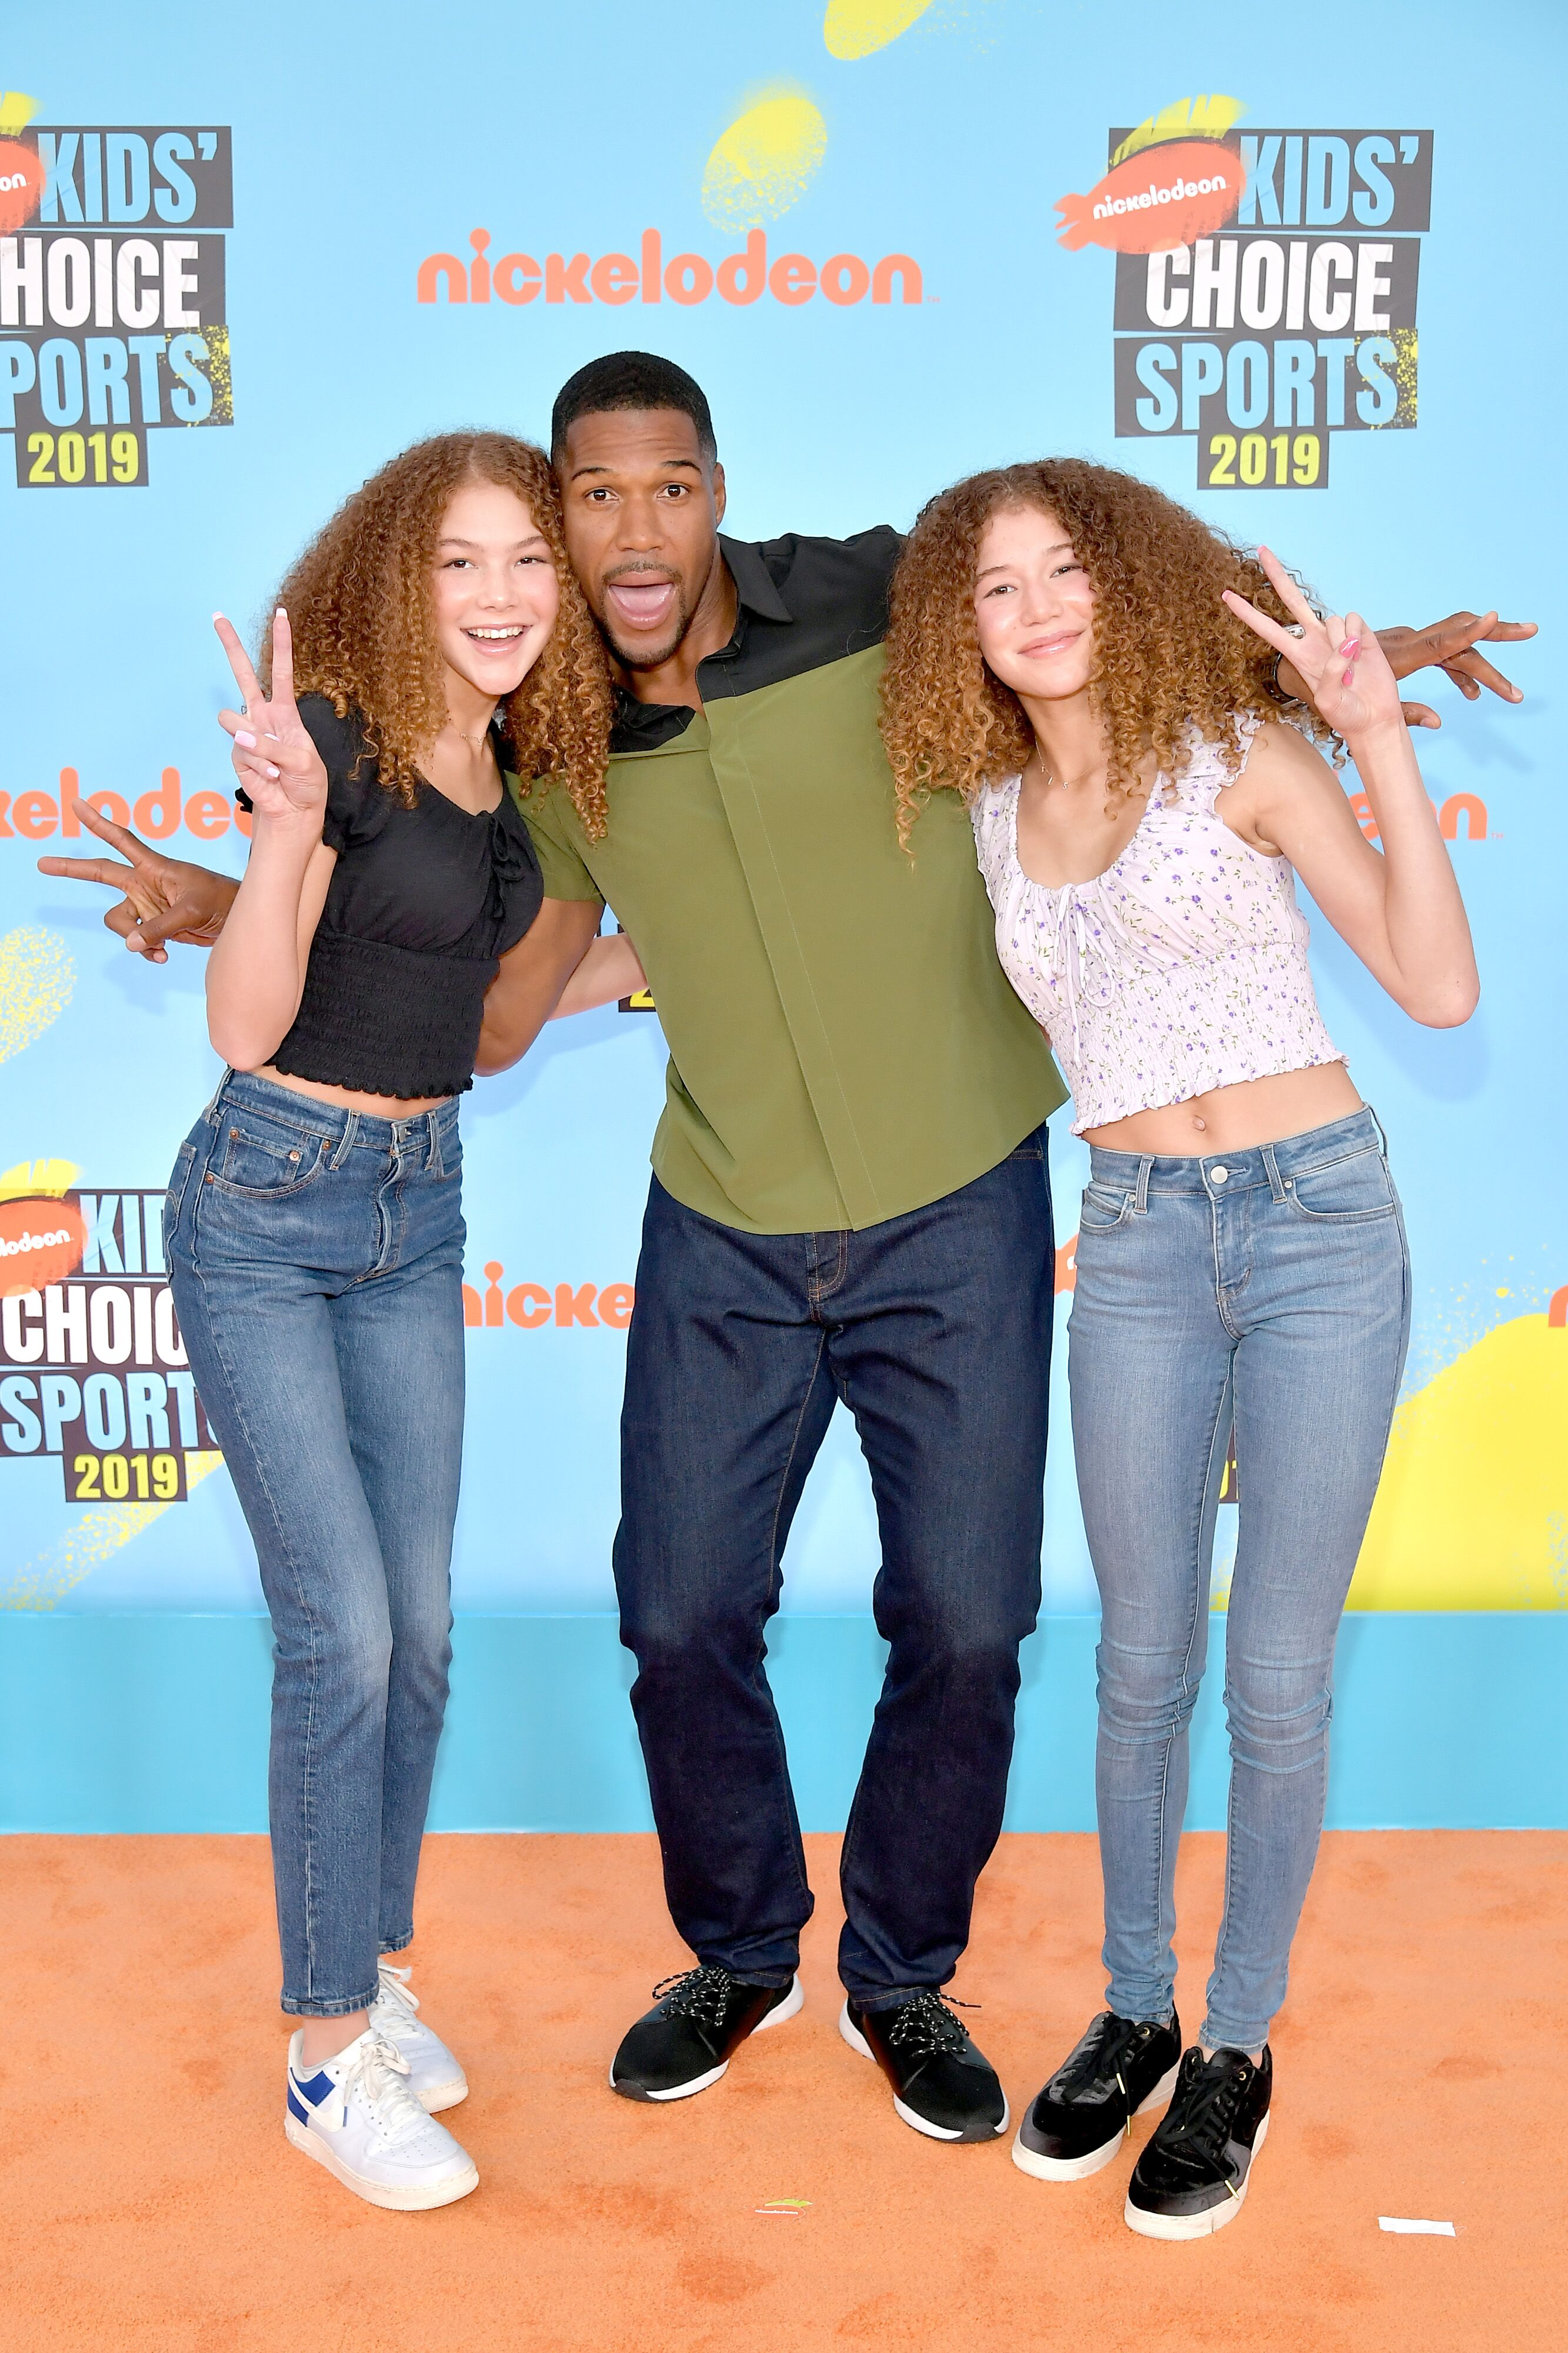 (L-R) Isabella Strahan, host Michael Strahan, and Sophia Strahan attend Nickelodeon Kids' Choice Sports 2019 at Barker Hangar on July 11, 2019 | Photo: Getty Images